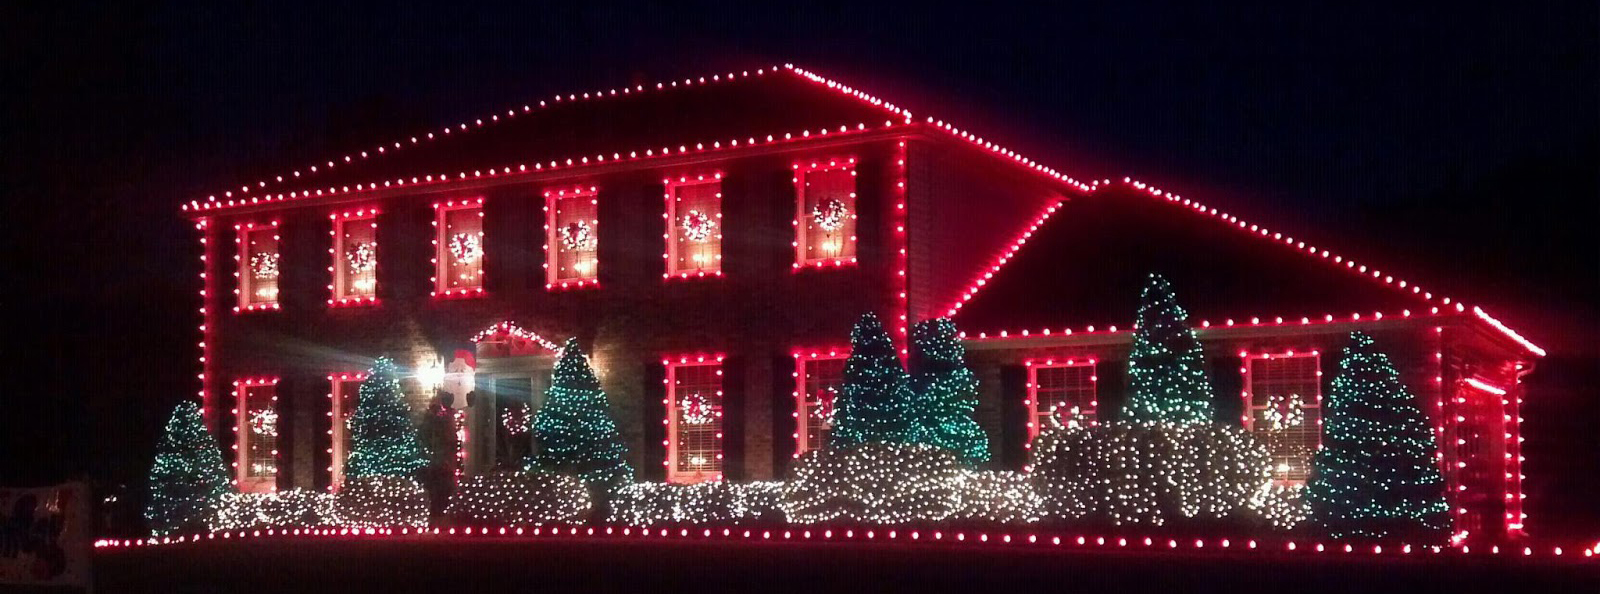 The Complete Guide To Led Christmas Lights Electrician Courses 4u